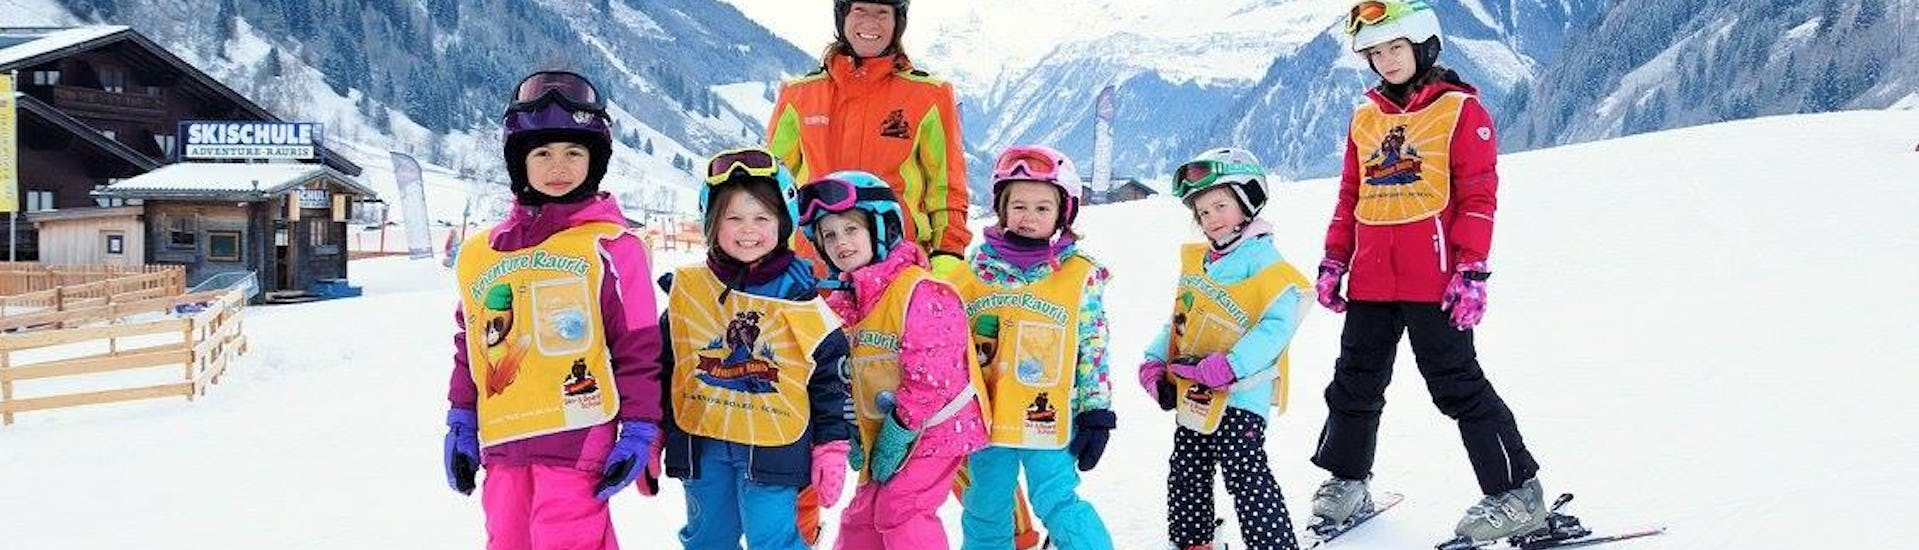 "Ski Lessons ""All-in-One"" for Kids (4-6 years) - All Levels"